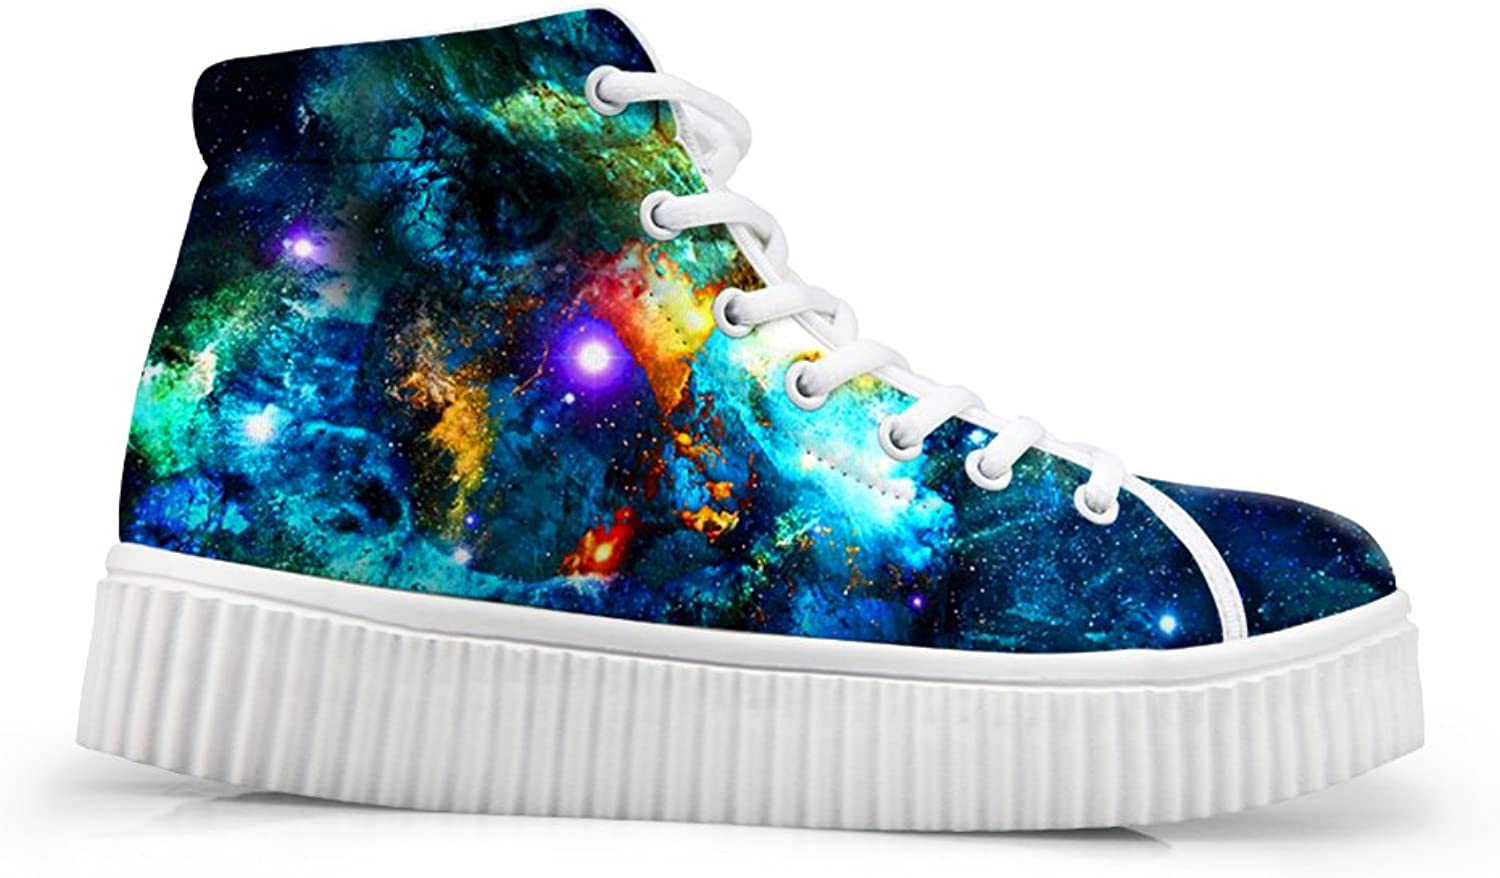 Mumeson Women High Top Sneaker colorful Galaxy Print Lace-up Casual Platform shoes